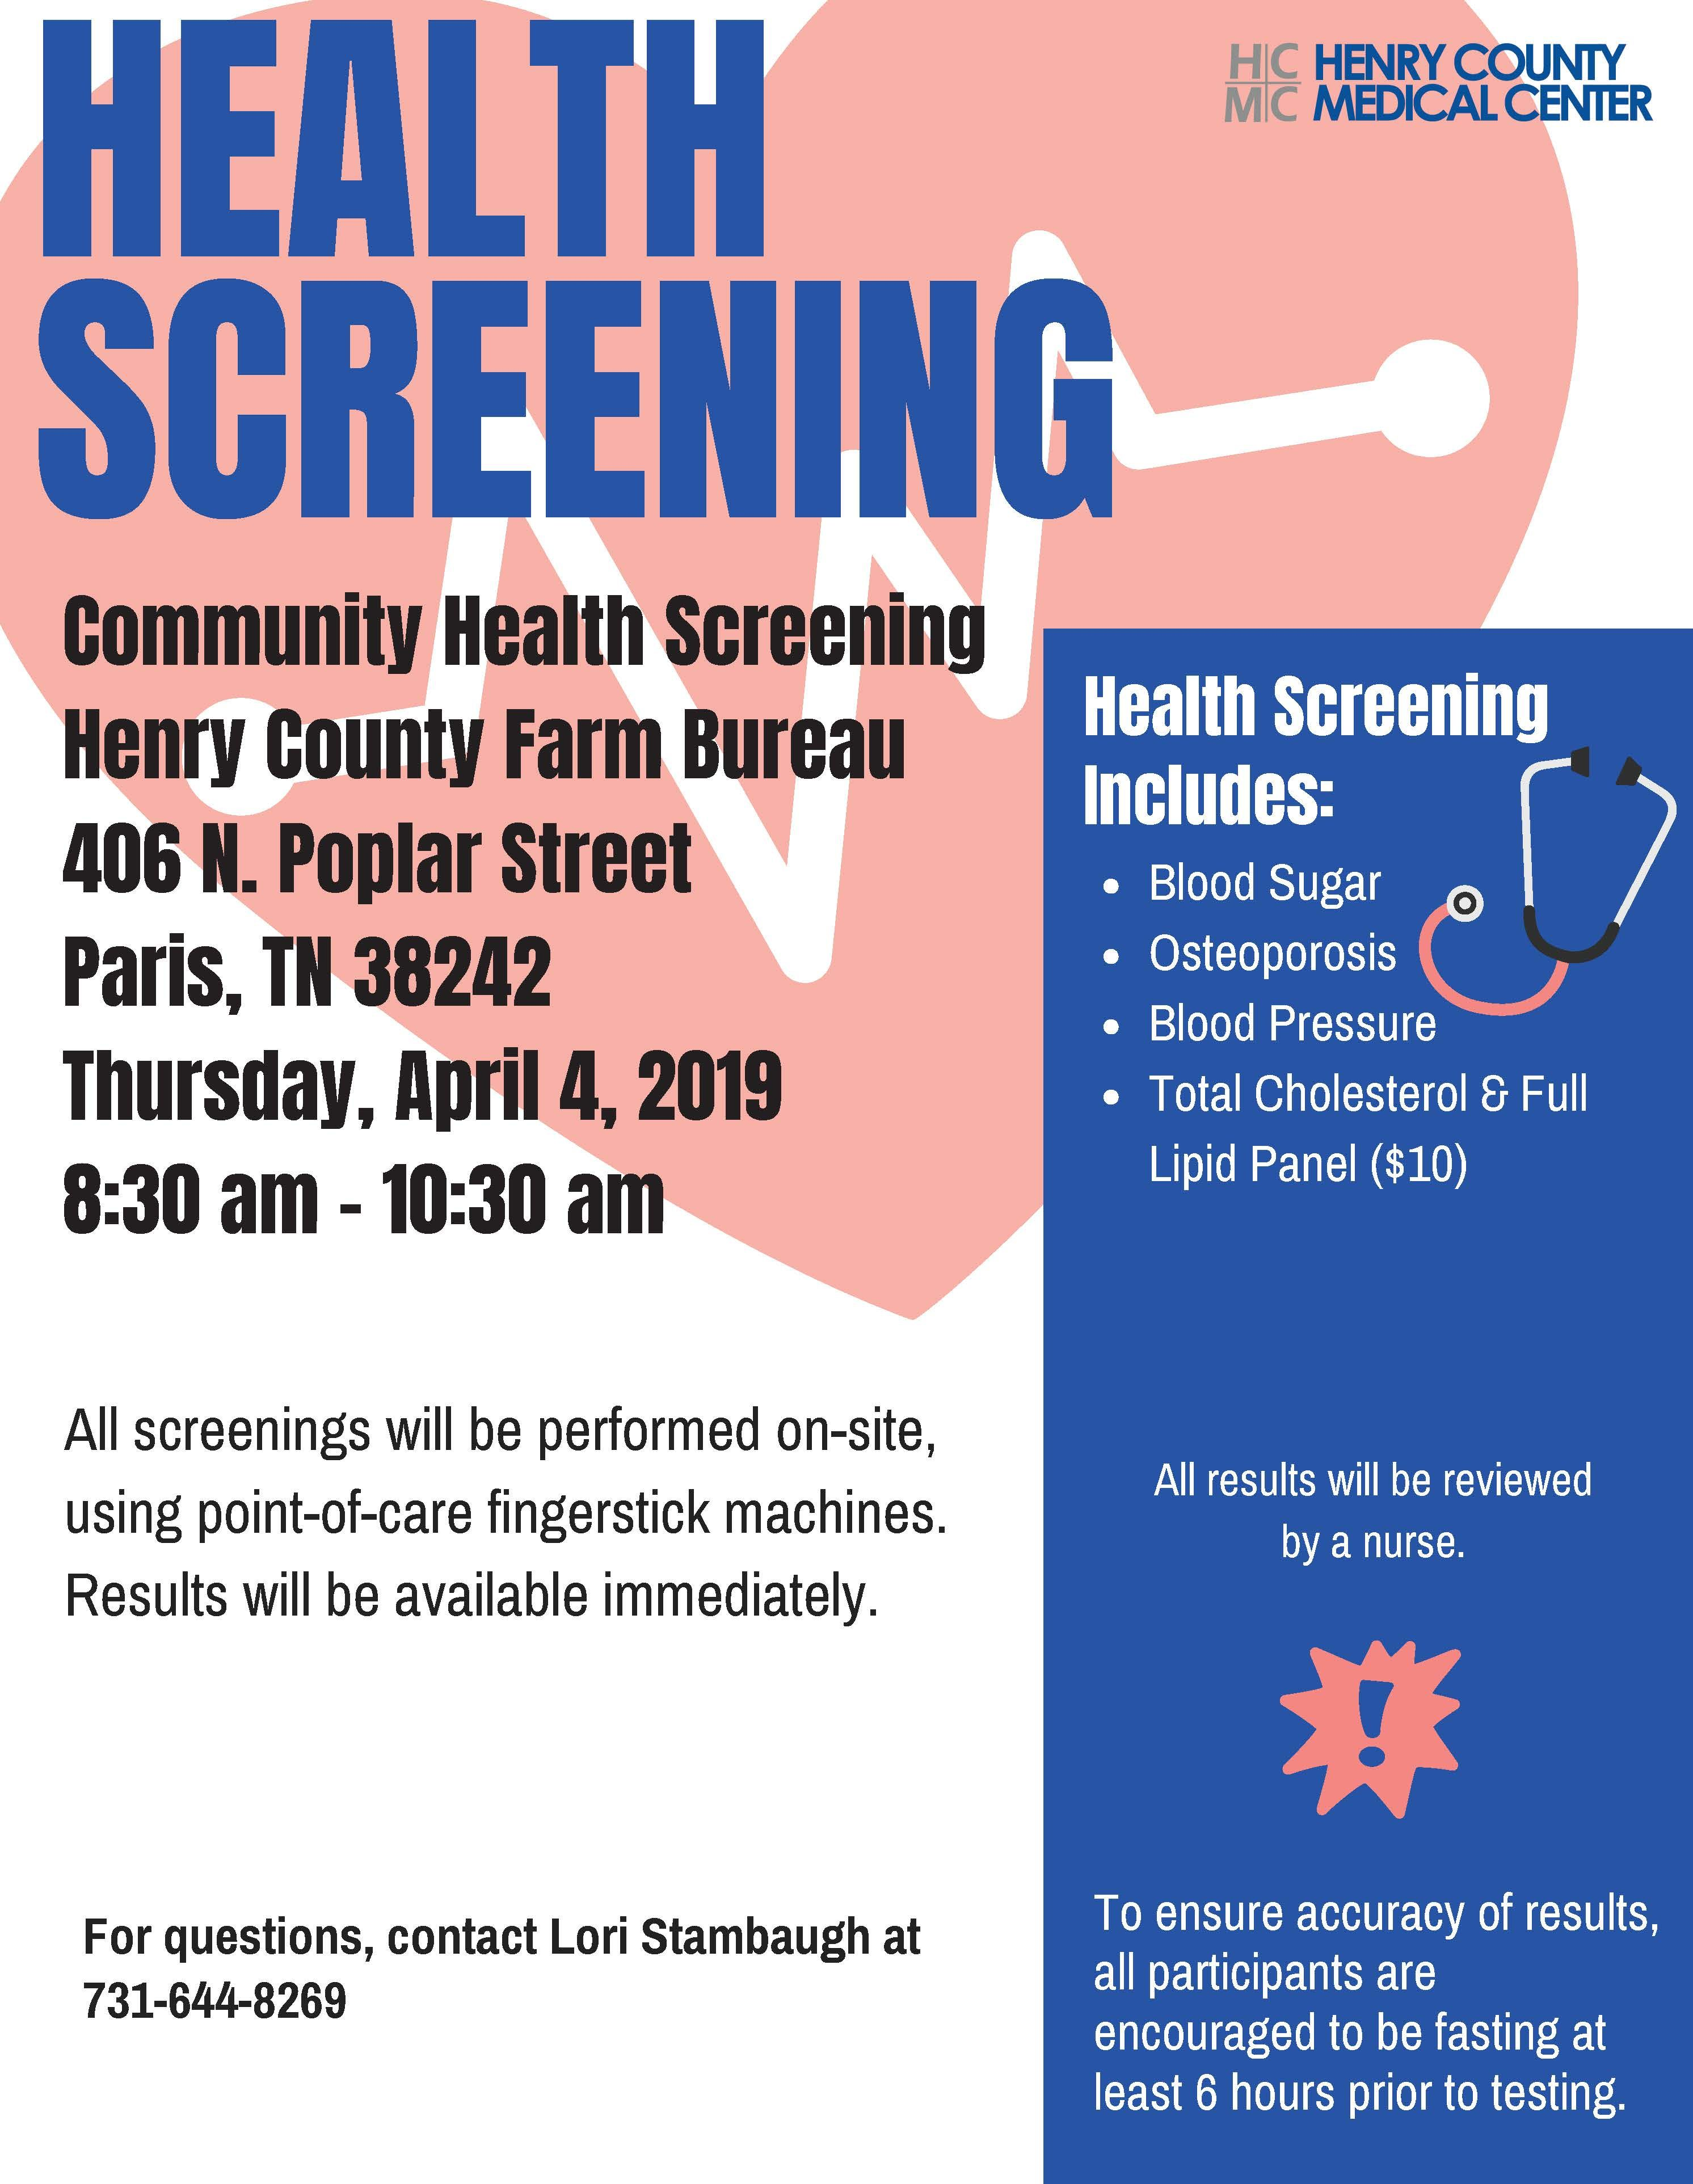 A Week From Today We Will Be Offering Our Community Health Screening At Henry County Farm Bureau St Health Screening Henry County Looking Forward To Seeing You